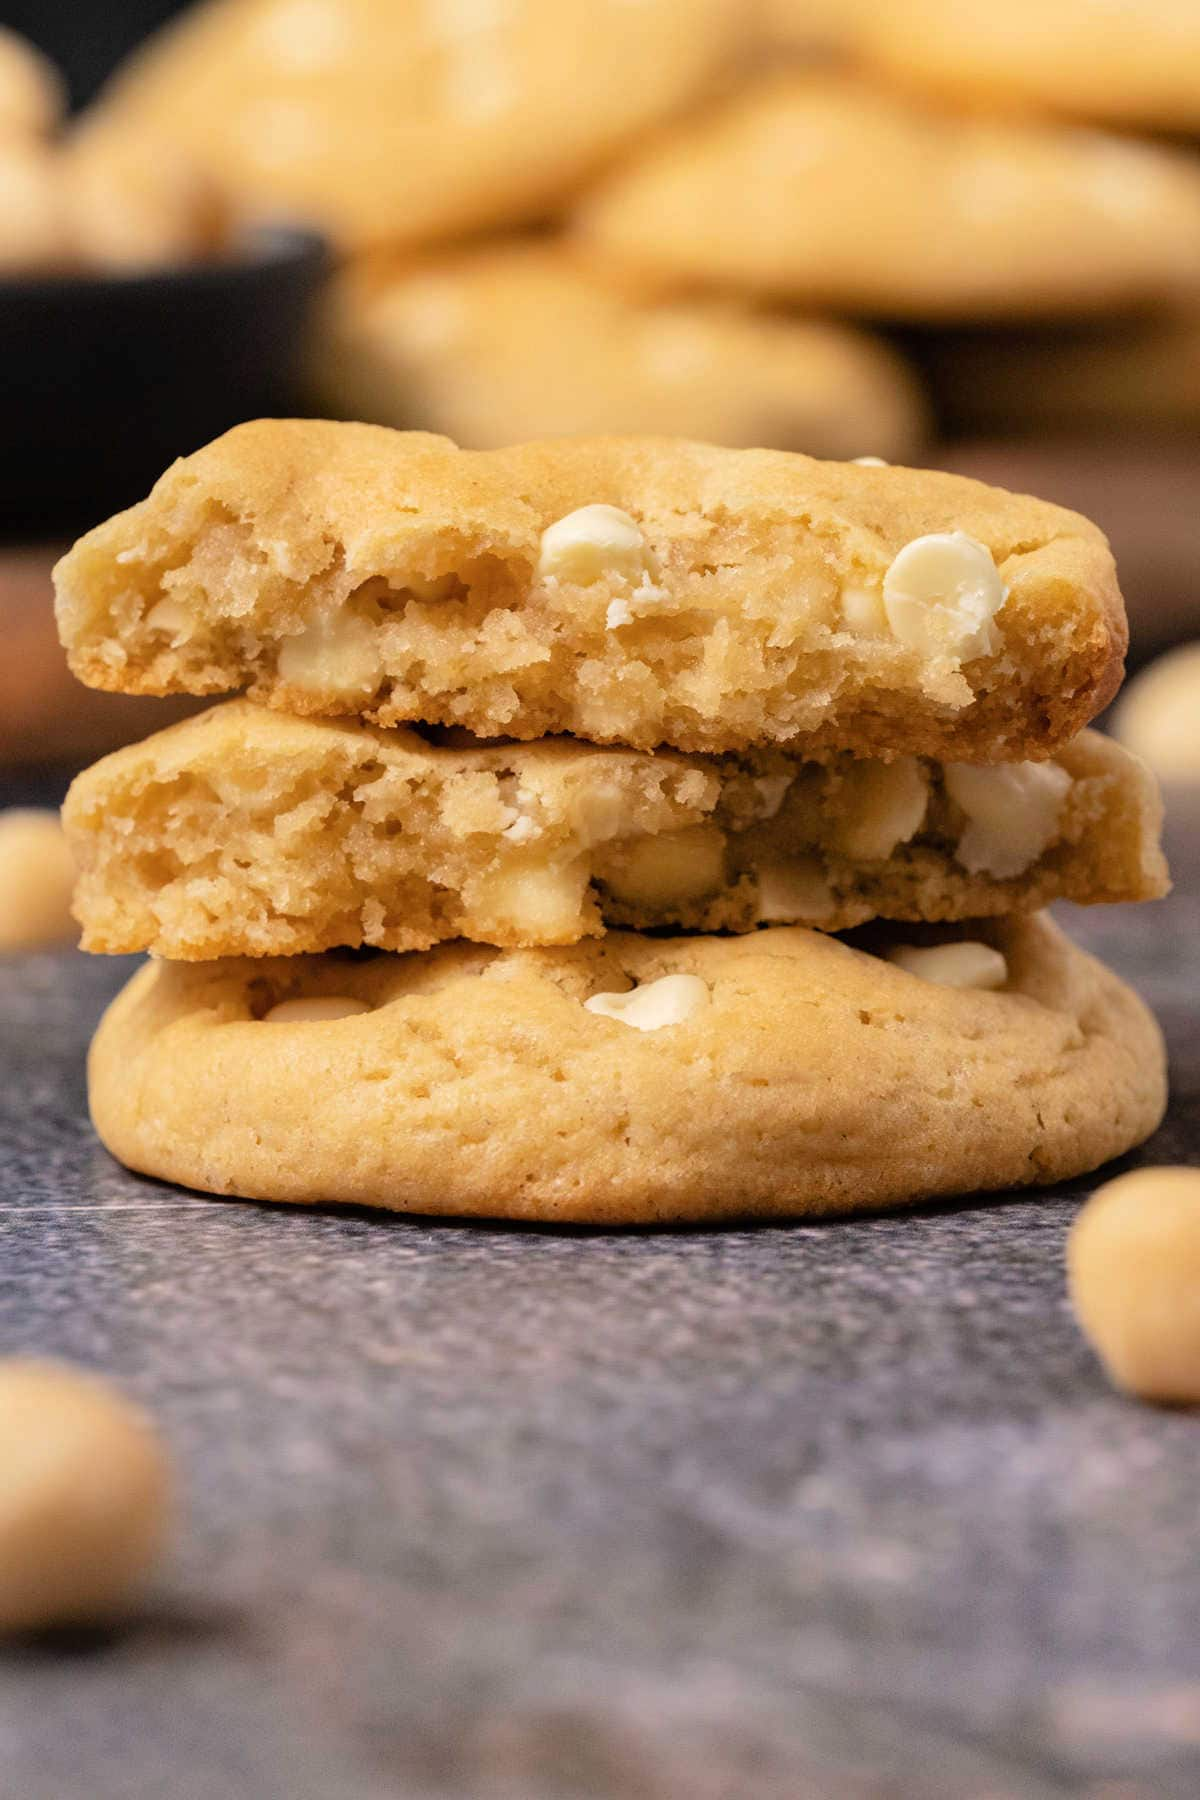 Macadamia nut cookies in a stack with the top cookie broken in half.